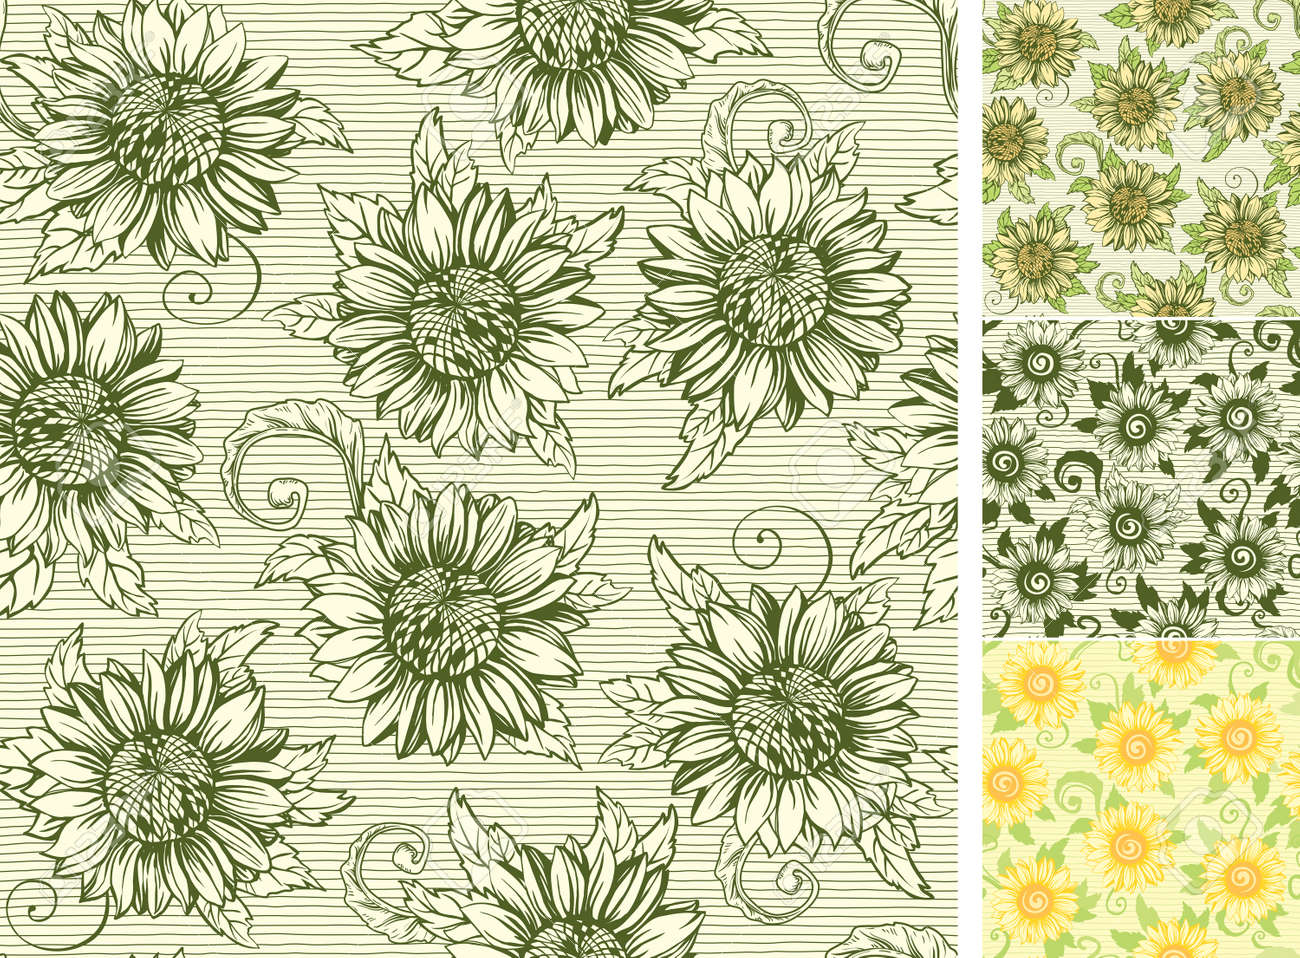 Vintage Floral Backgrounds Vector Ornate Seamless Patterns